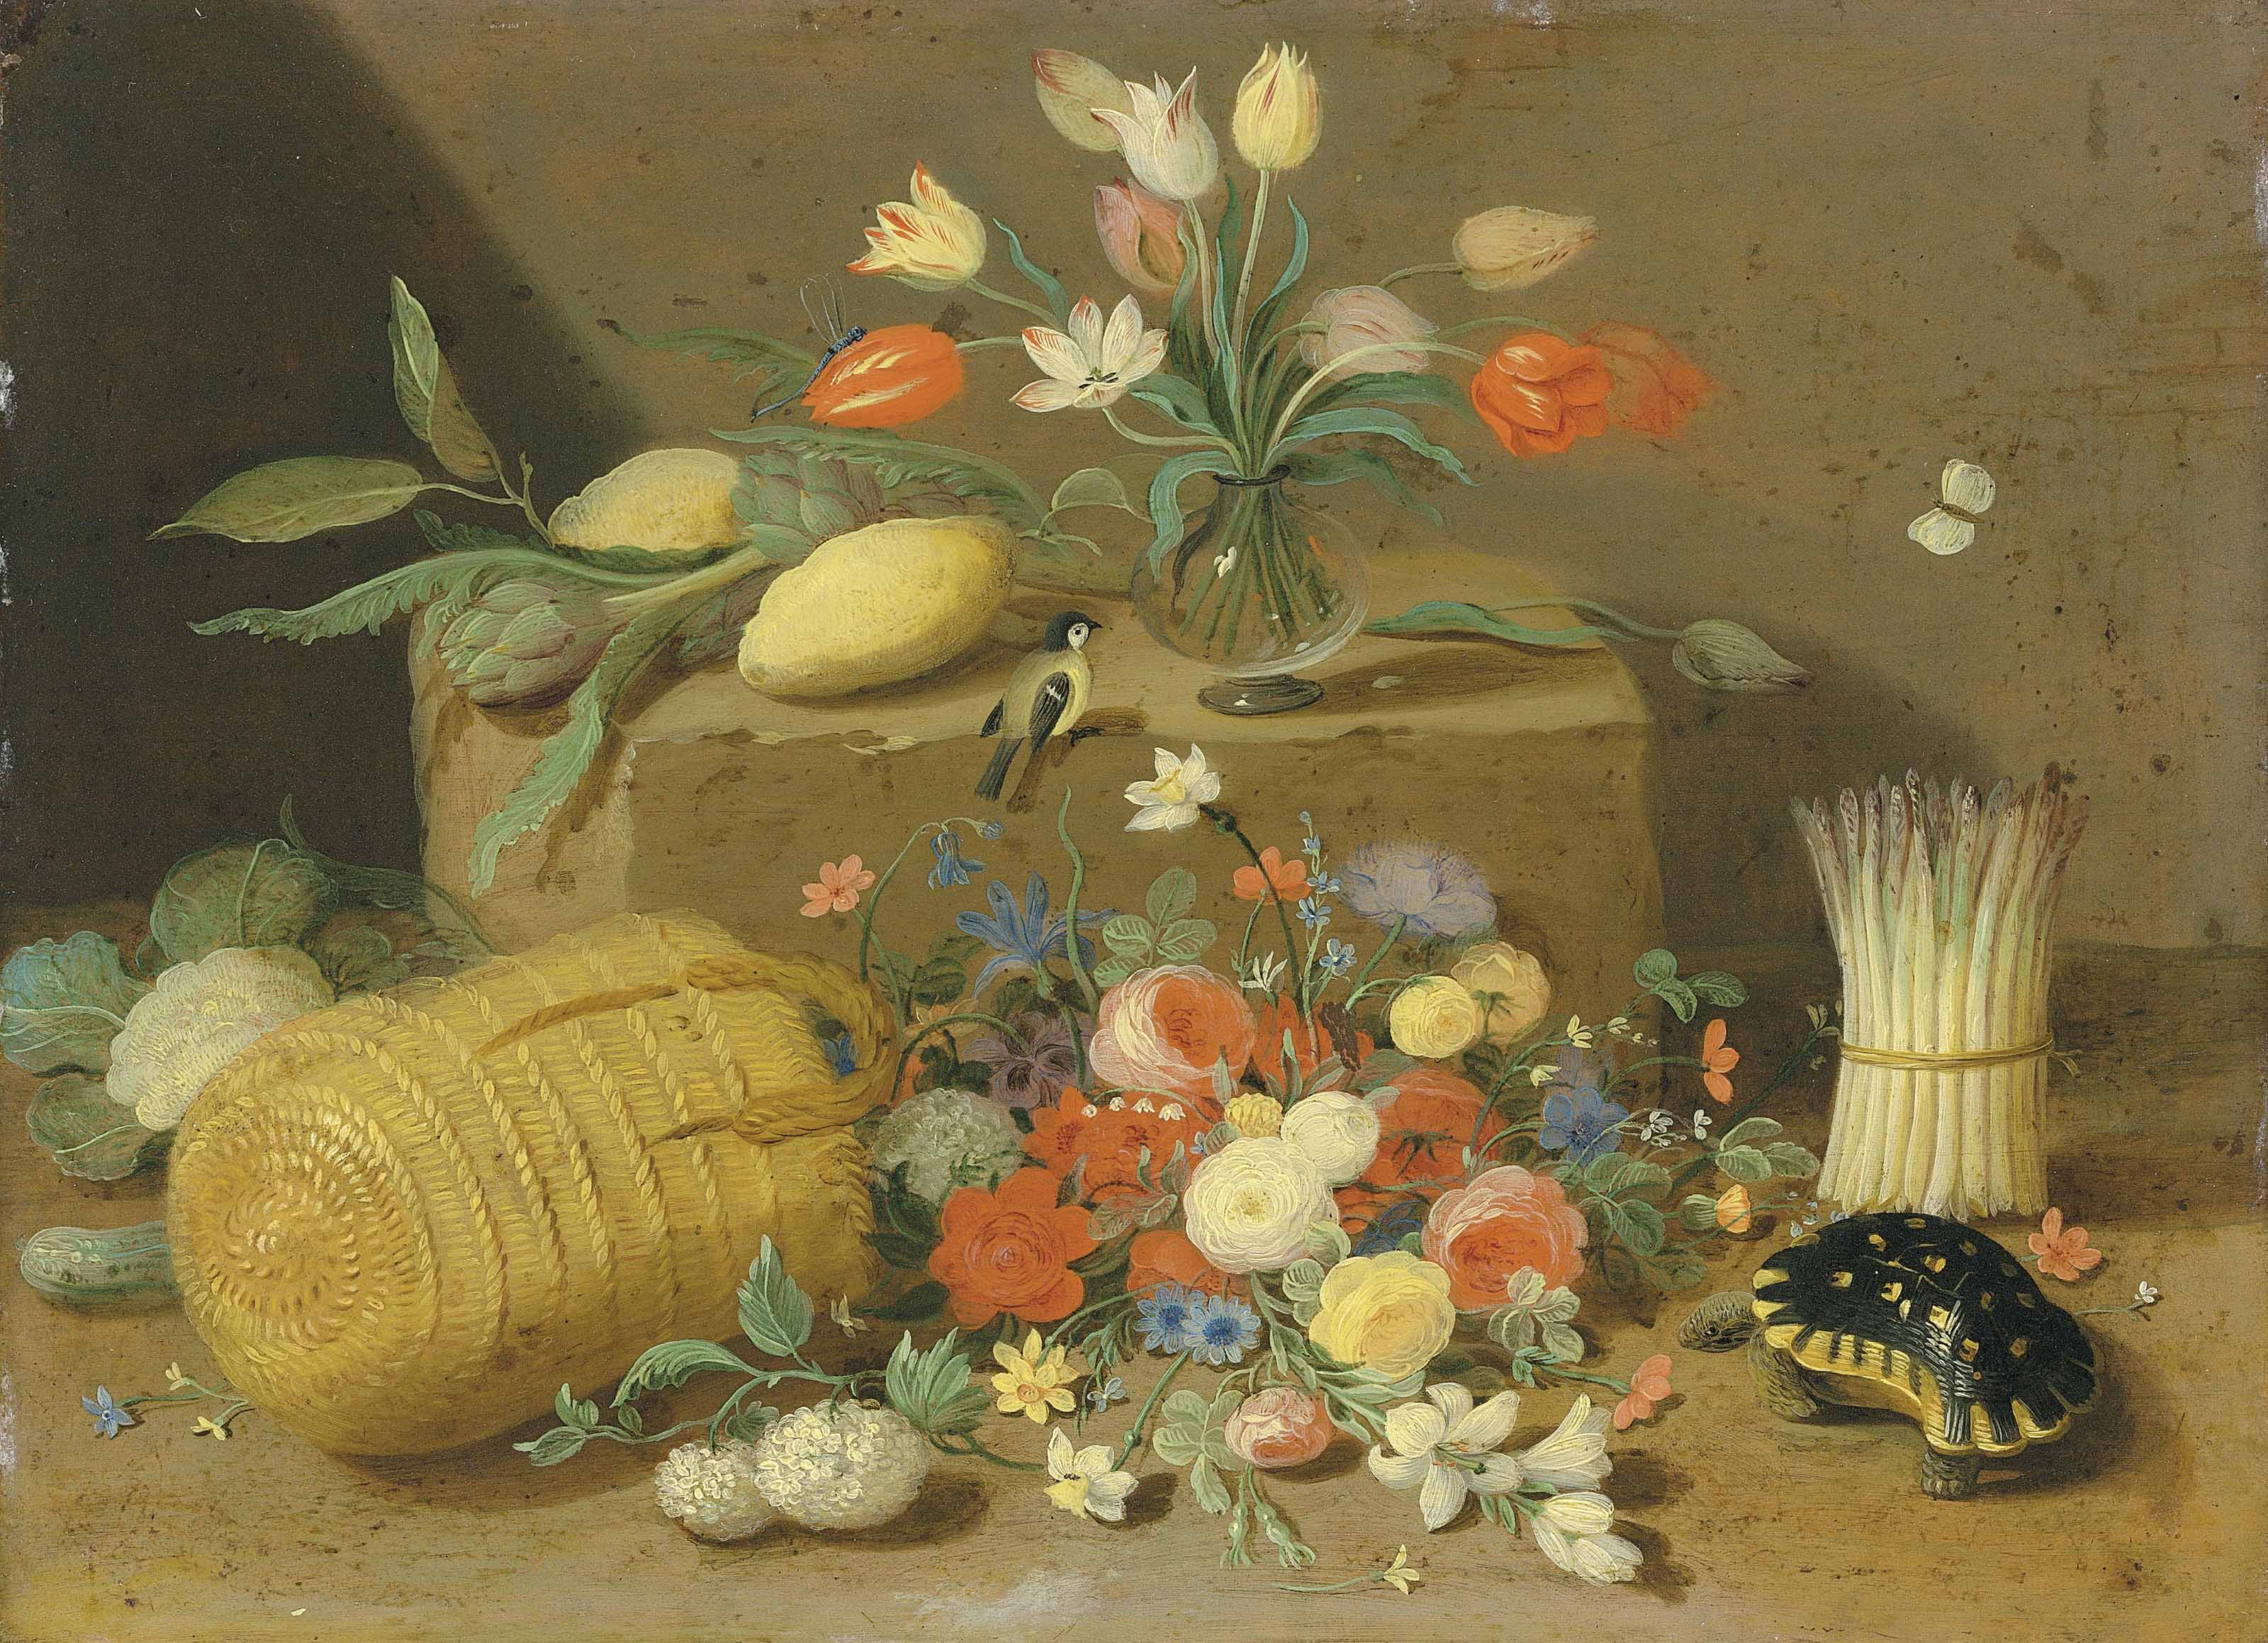 An overturned basket of flowers with a tortoise